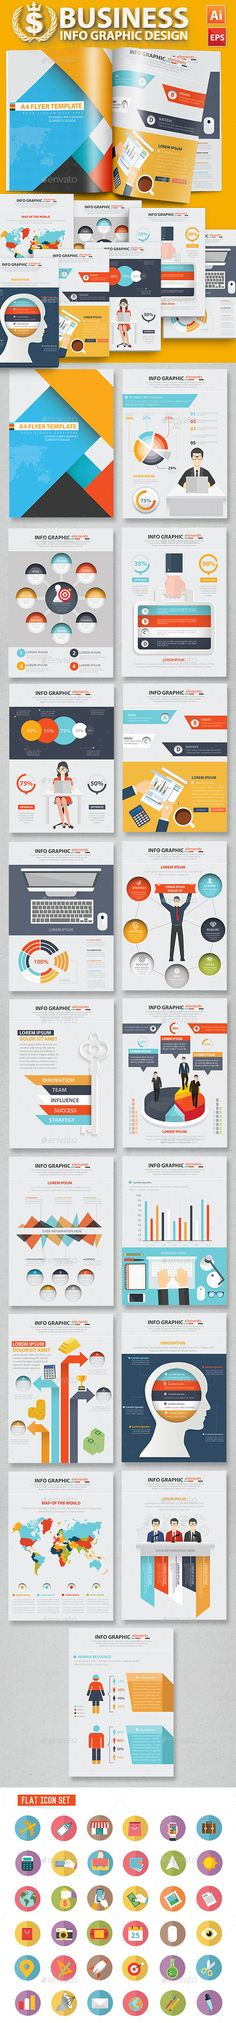 Business Infographic Design 17 Pages Template Vector EPS, AI. Download: http://graphicriver.net/item/business-infographic-design-17-pages/12324562?ref=ksioks